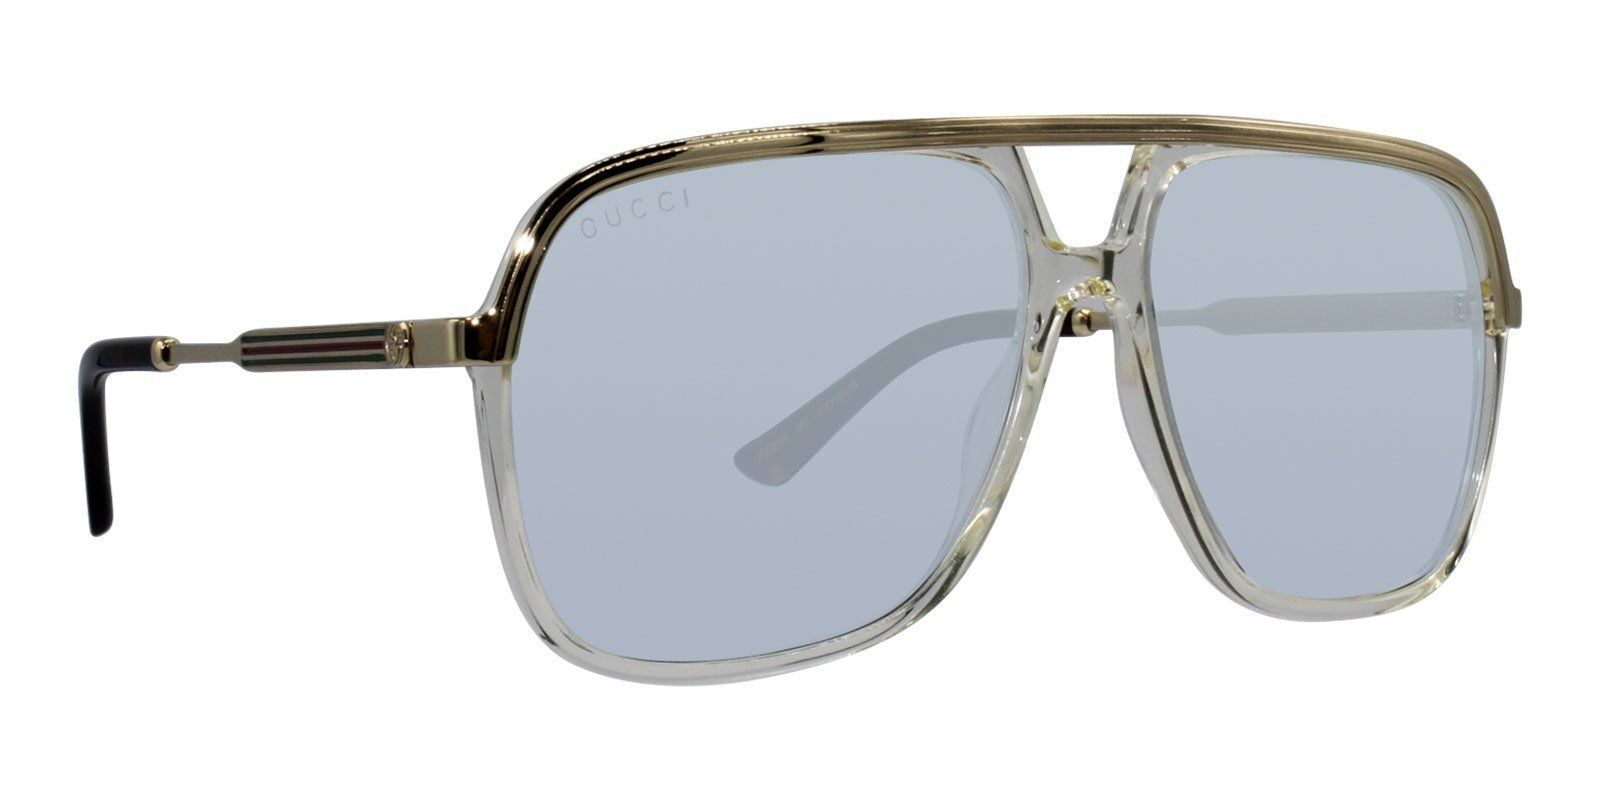 e307d8a8a1587 Gucci - GG0200S Gold Clear - Clear-sunglasses-Designer Eyes ...